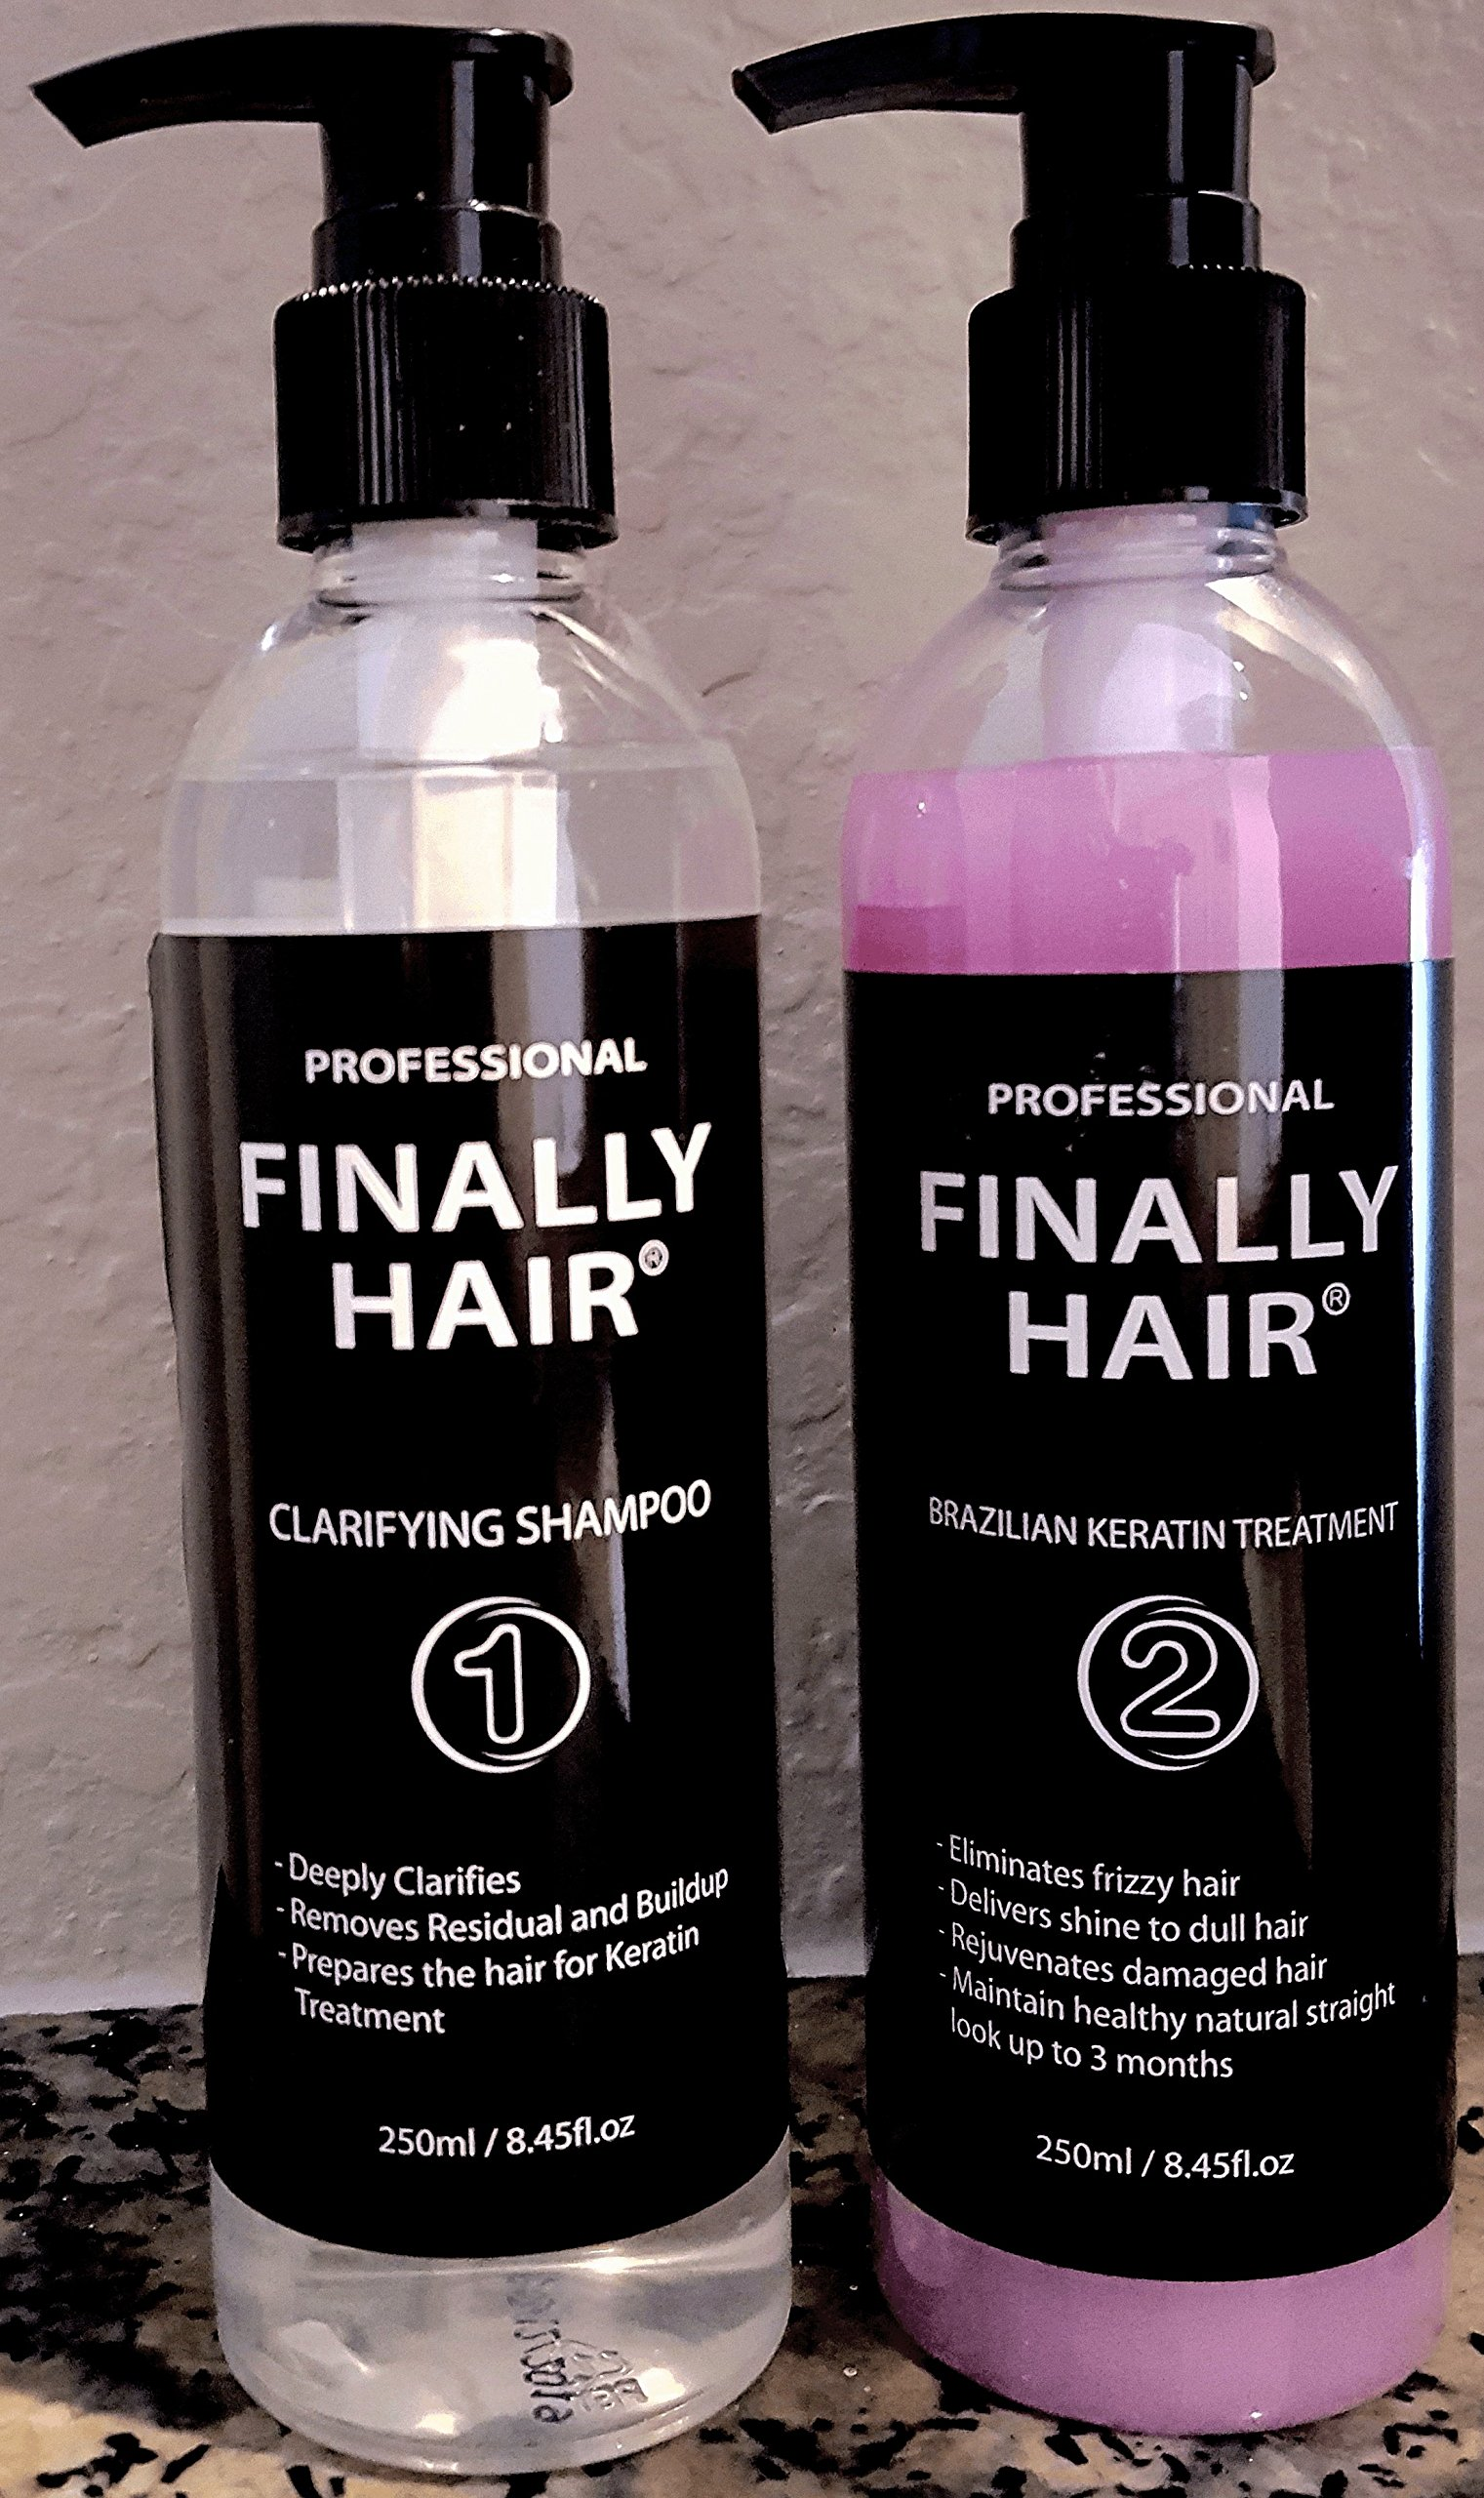 Finally Hair Deluxe Brazilian Keratin Straightening Smoothing Treatment For Professional Use - 500ml (Grape Milder Smell)